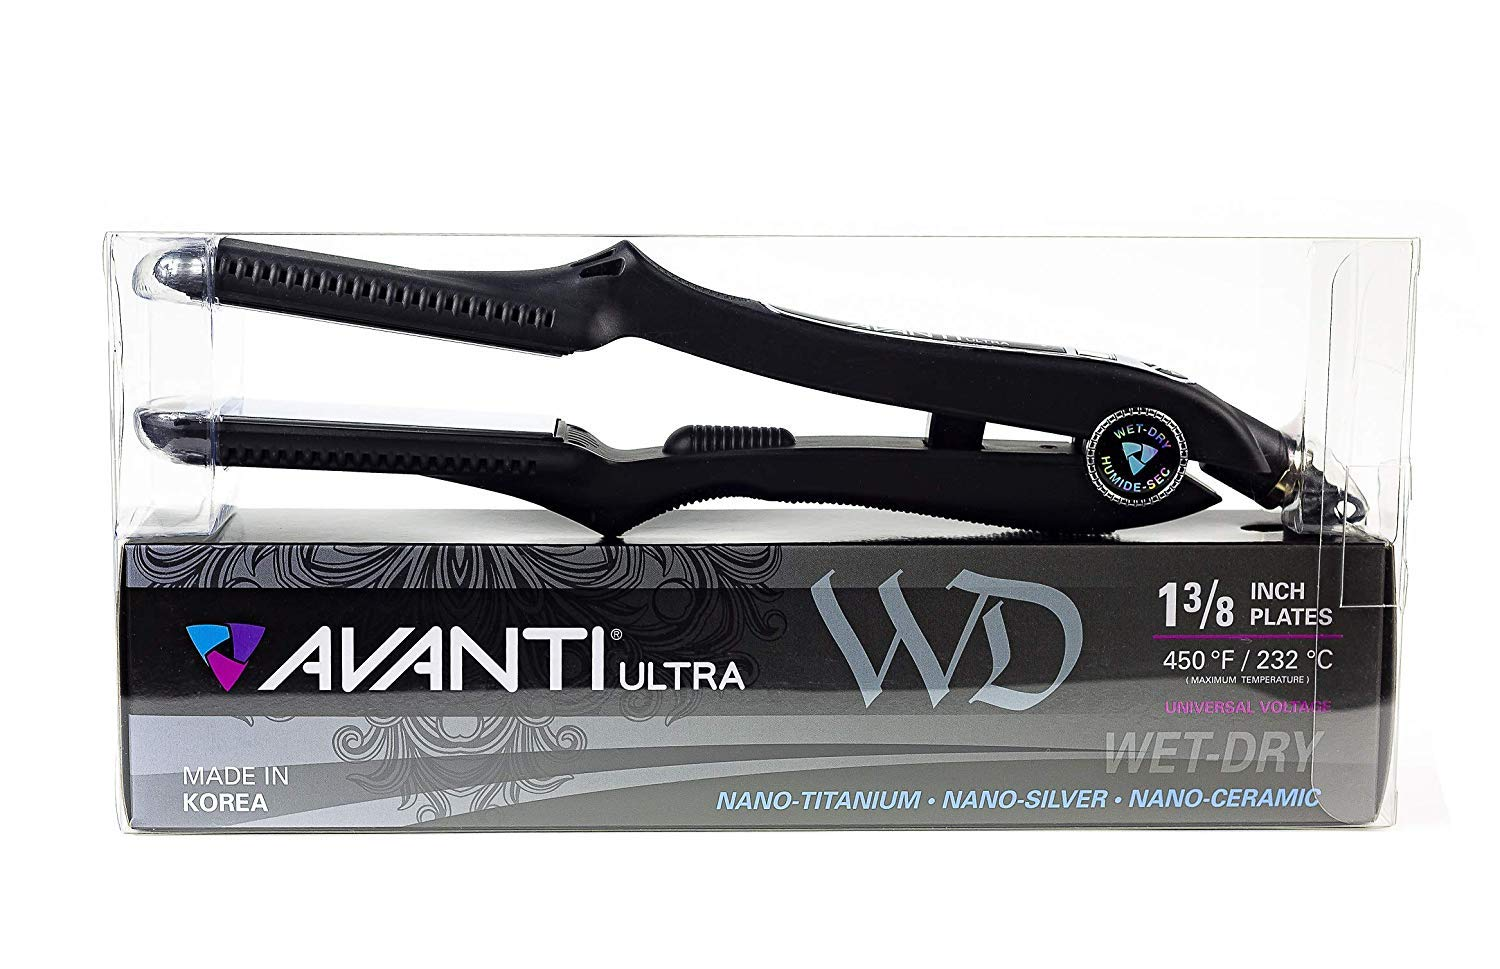 Avanti Ultra Wet-Dry Hair Straightener Nano Titanium Dual Voltage Flat Iron 1-3/8'